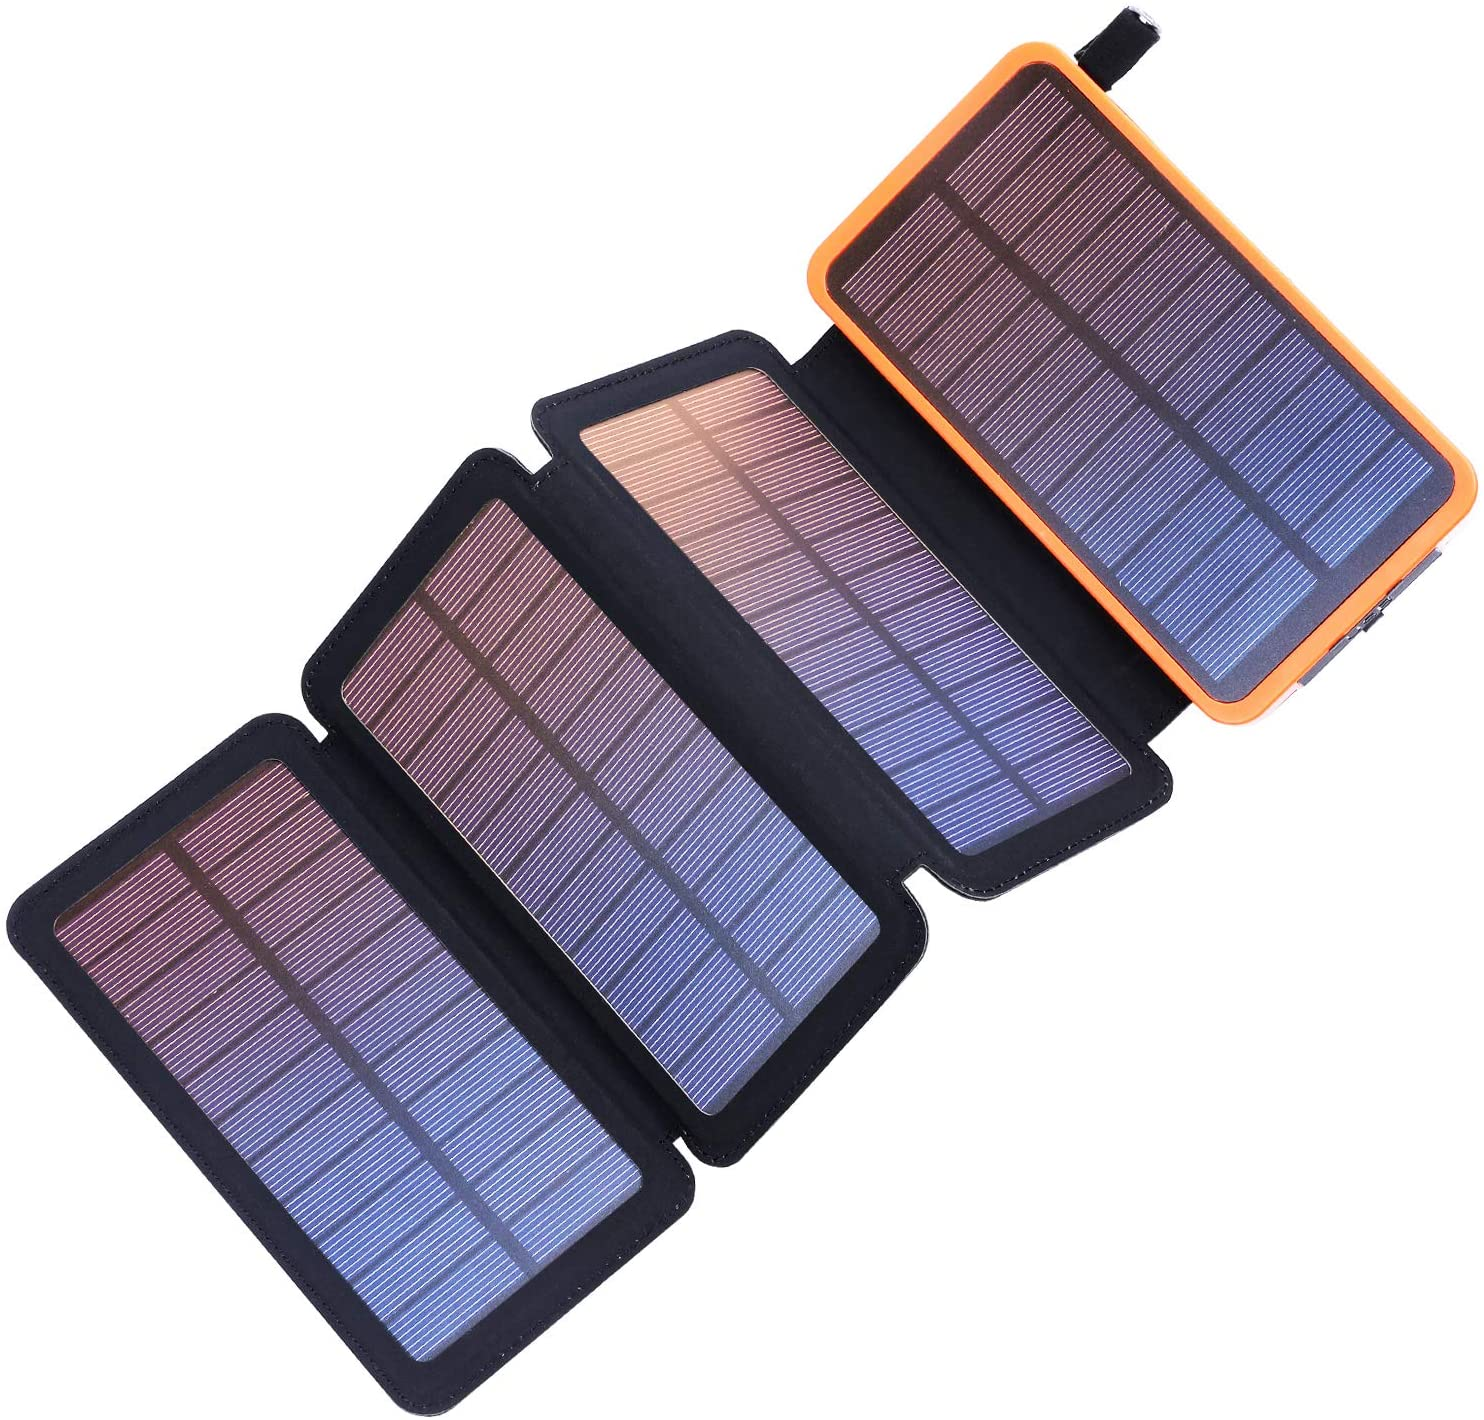 Pealiker Portable Solar Charger